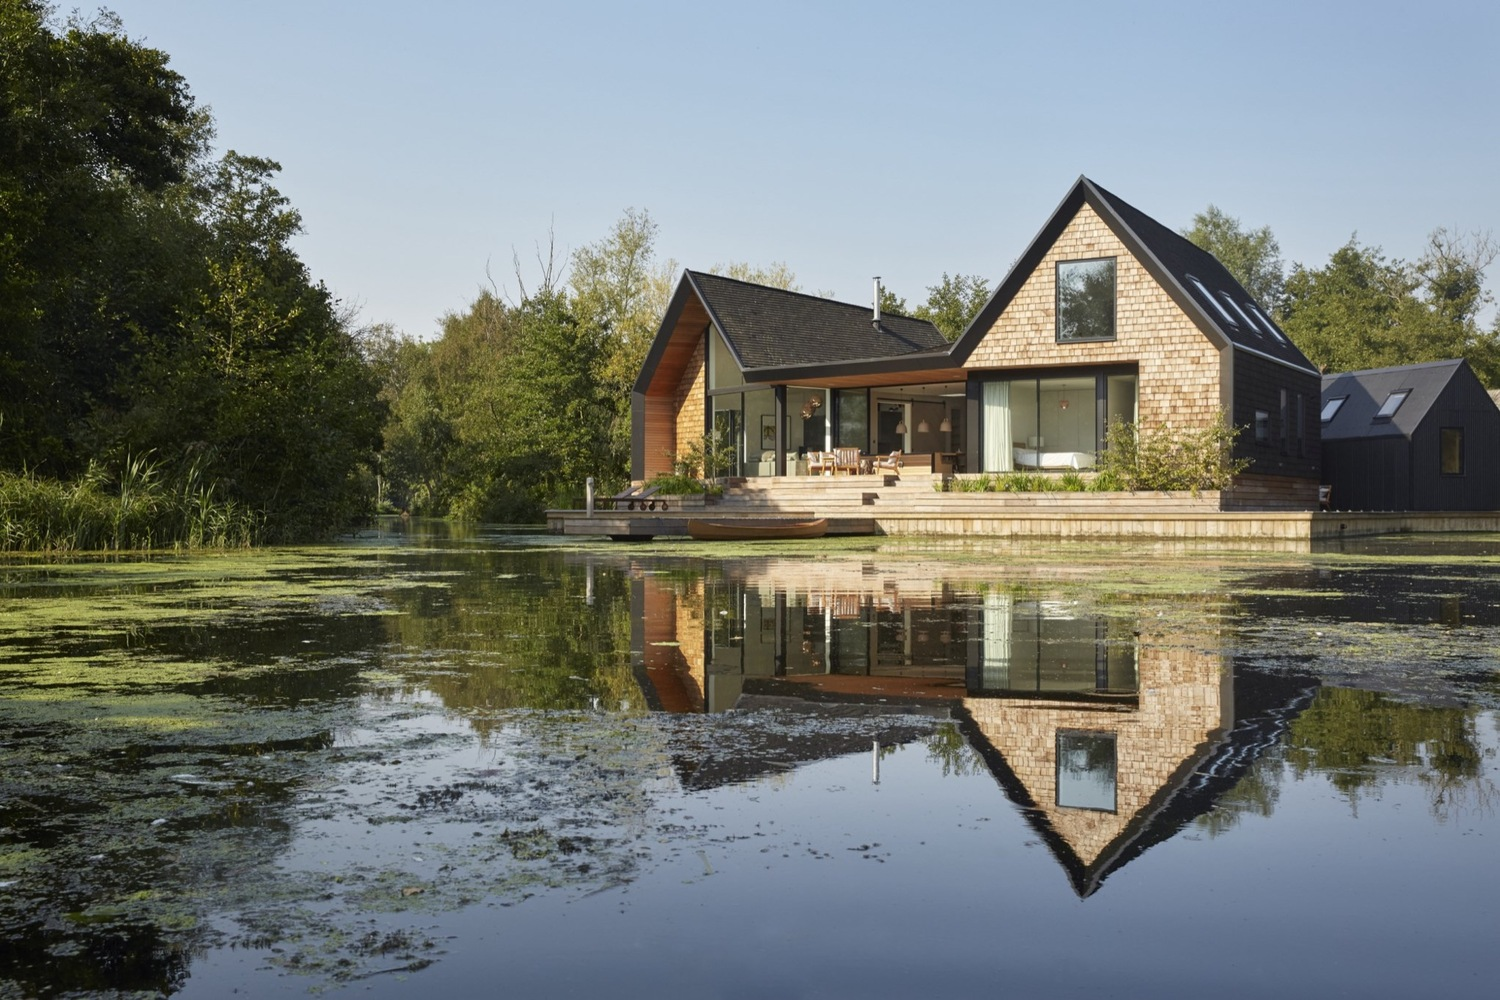 Backwater house by platform 5 architects in norfolk uk for Architects norfolk